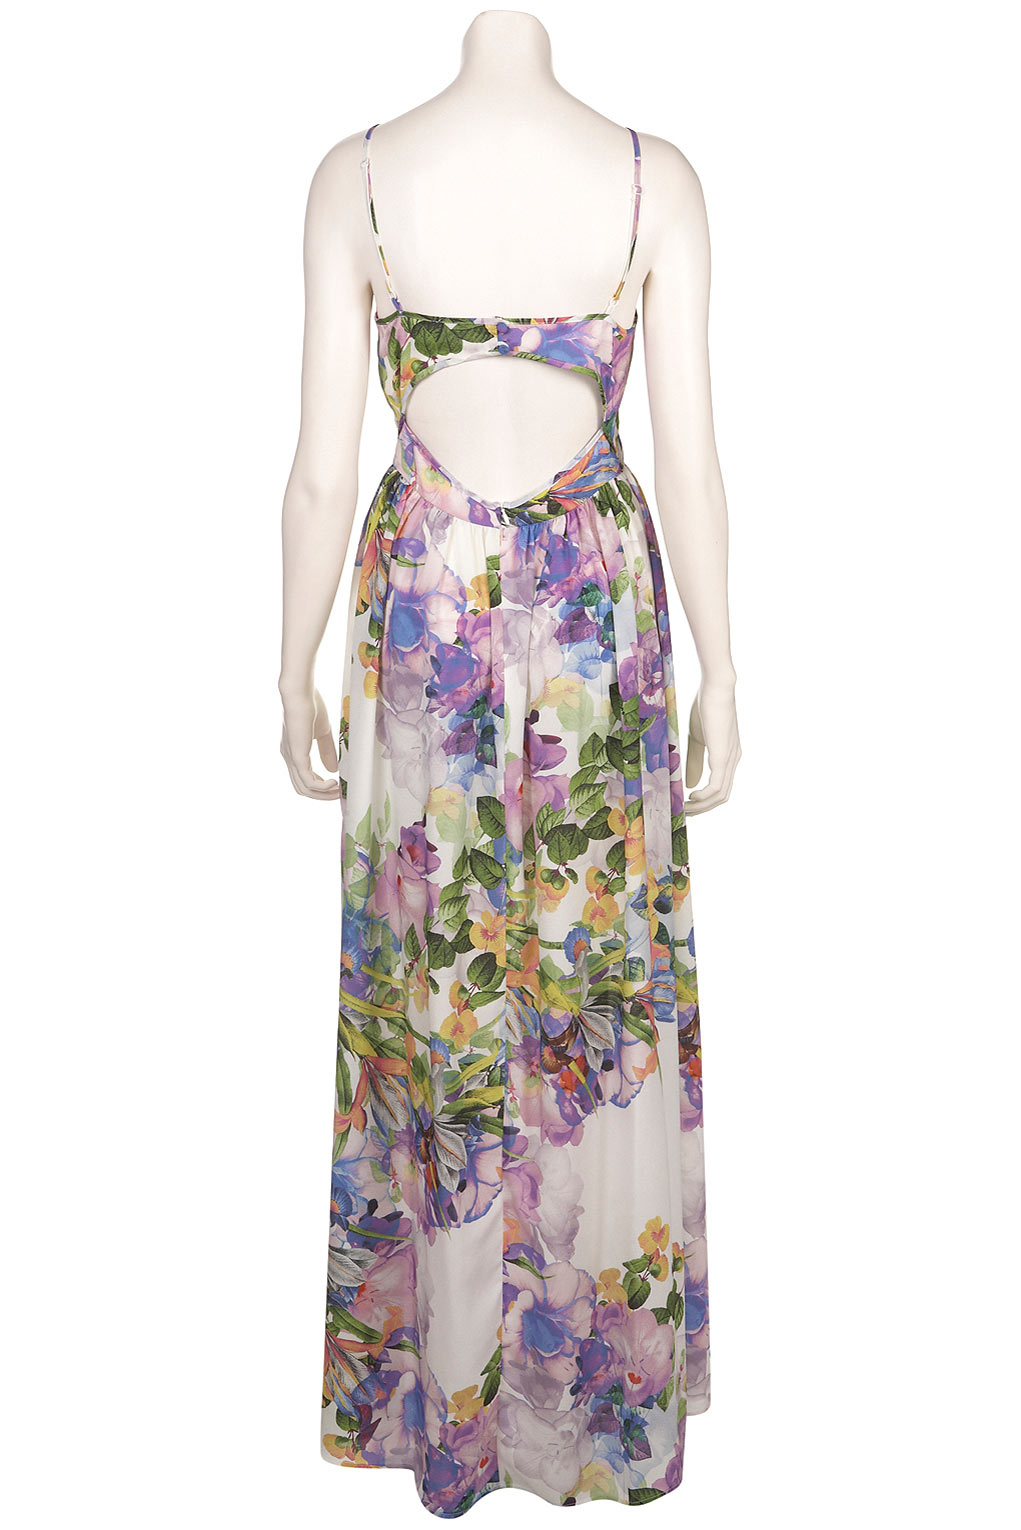 Lyst Topshop Floral Print Cutout Maxi Dress In White